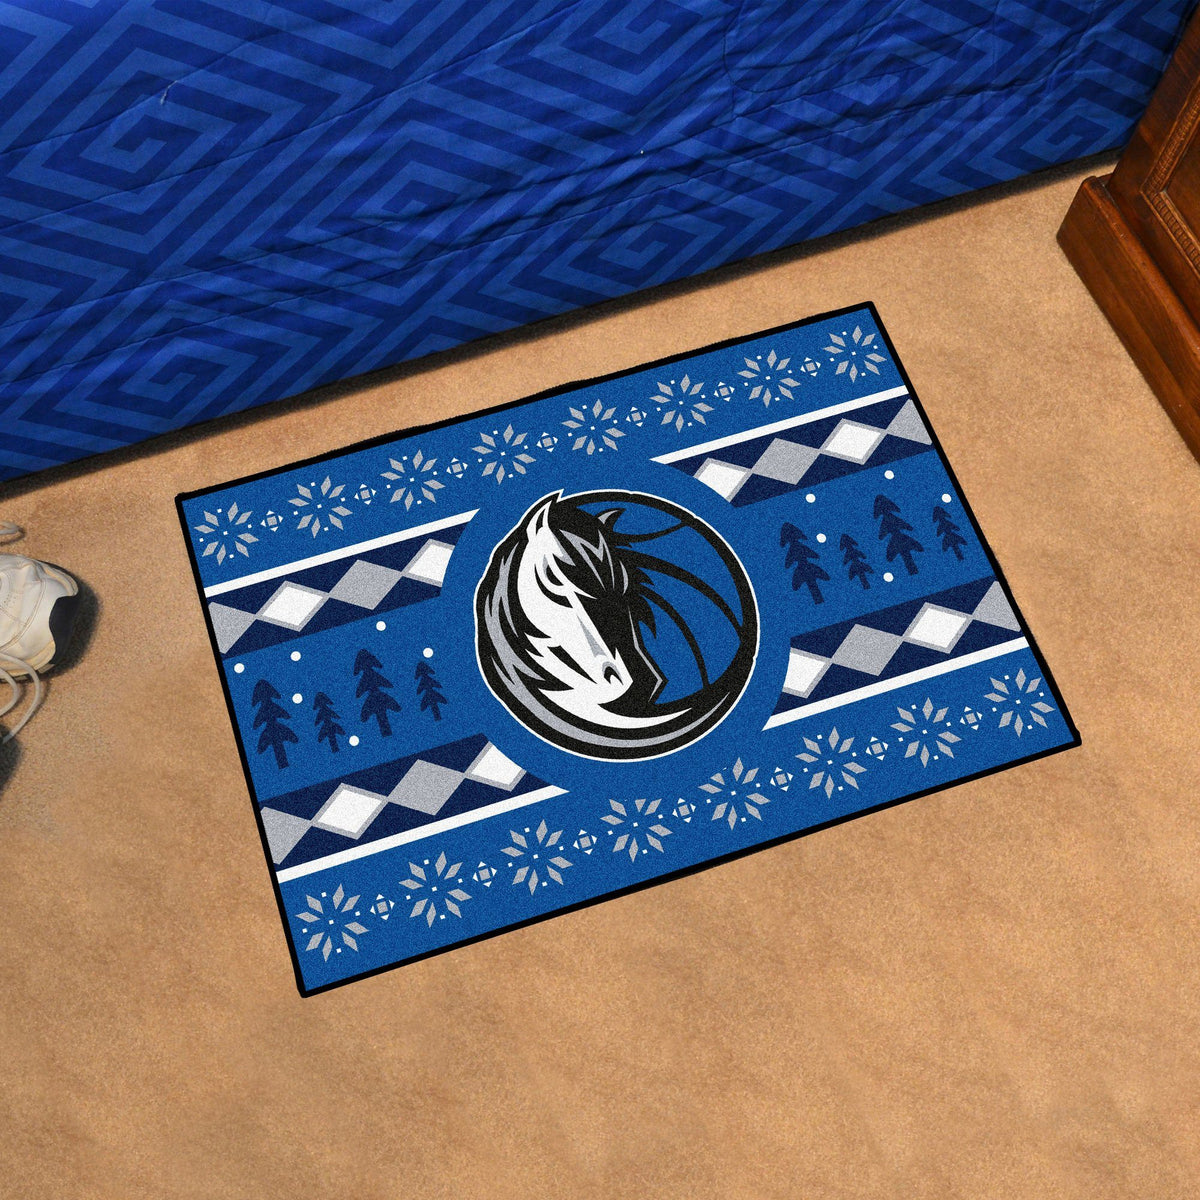 NBA - Holiday Sweater Starter Mat NBA Mats, Rectangular Mats, Holiday Sweater Starter Mat, NBA, Home Fan Mats Dallas Mavericks